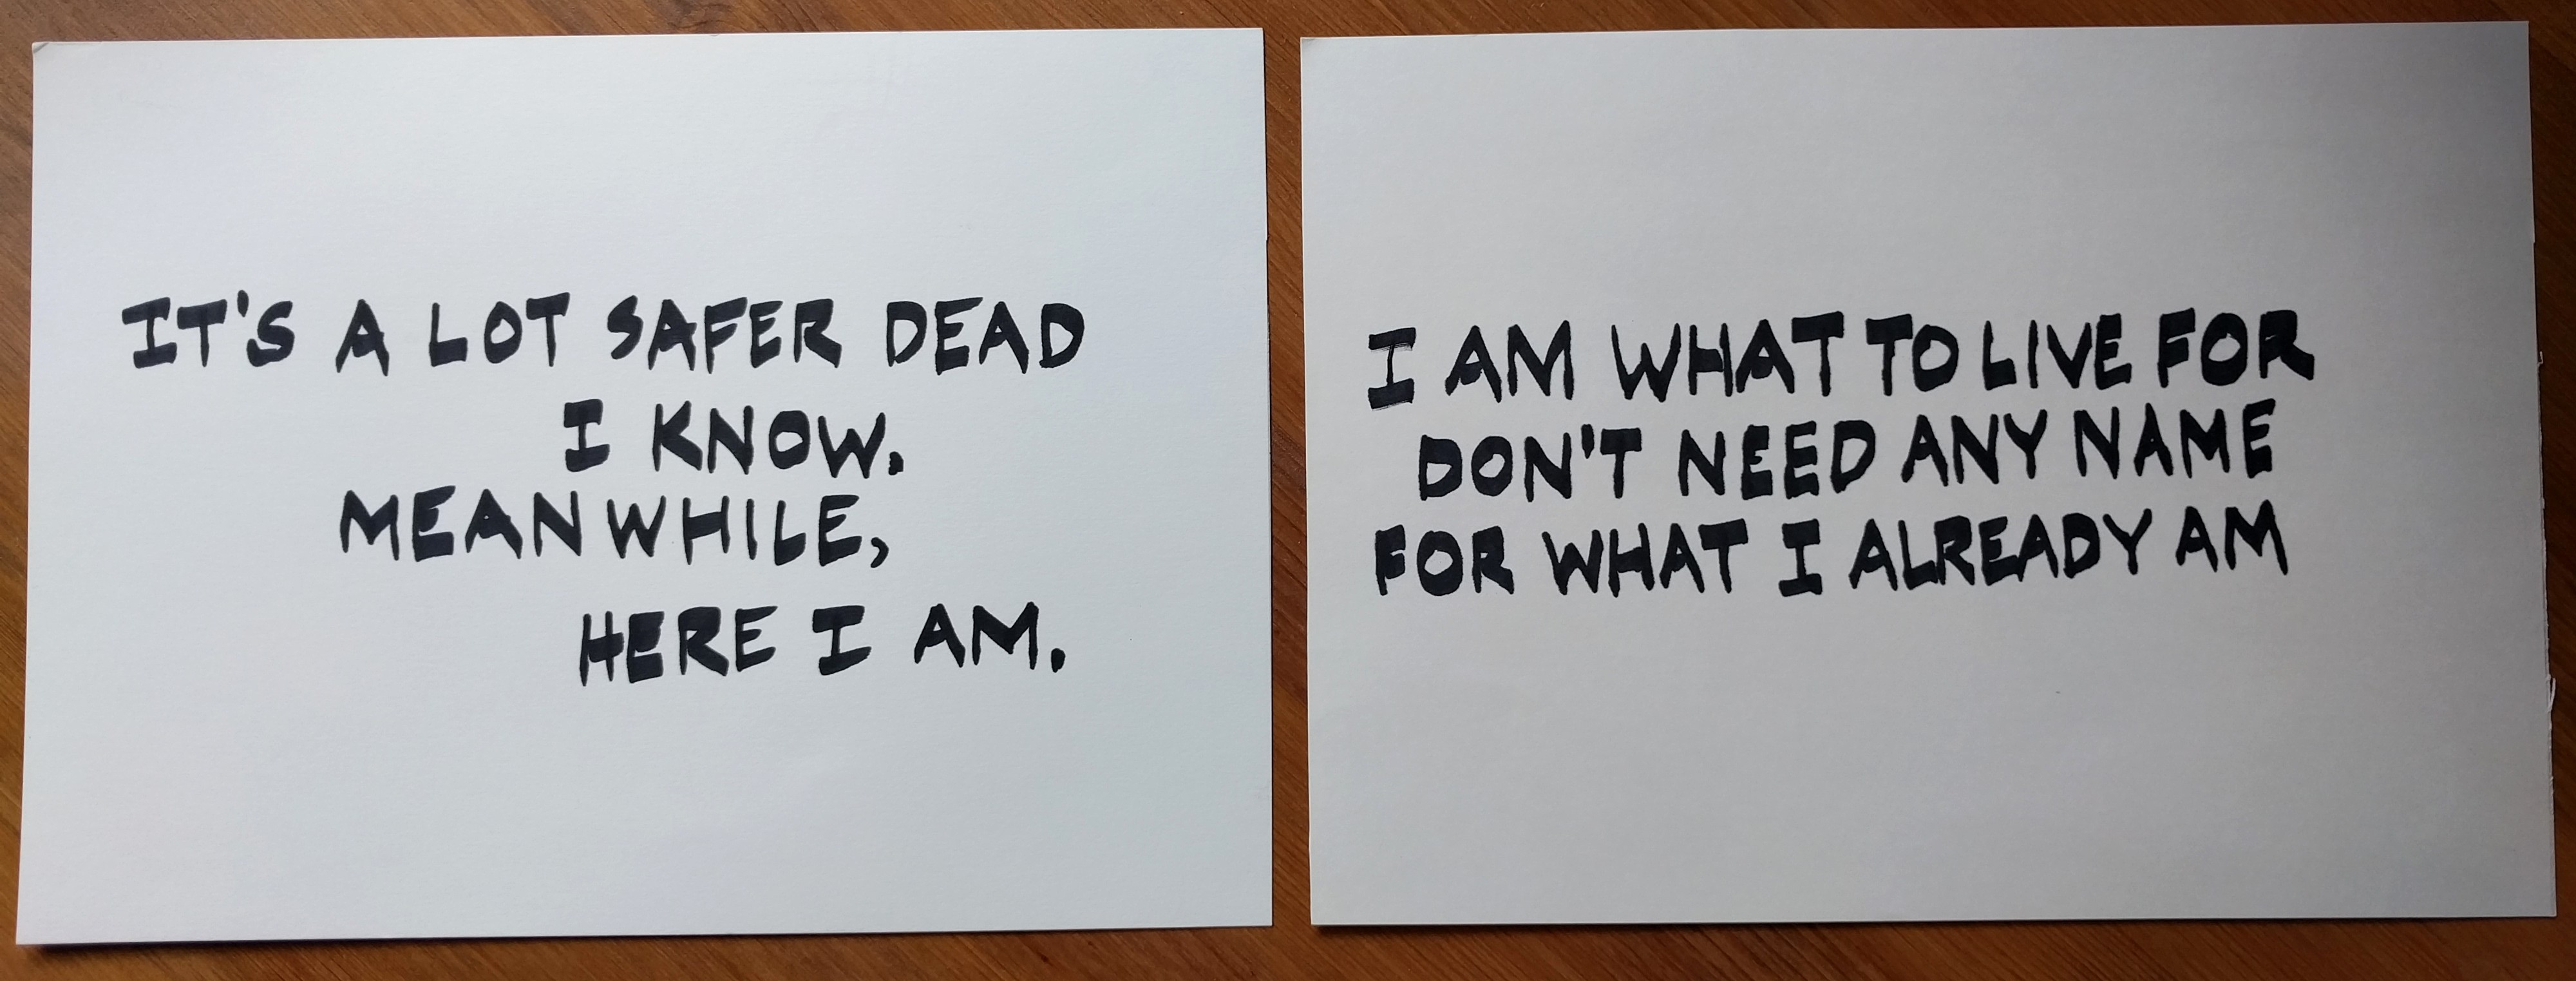 image of two poems